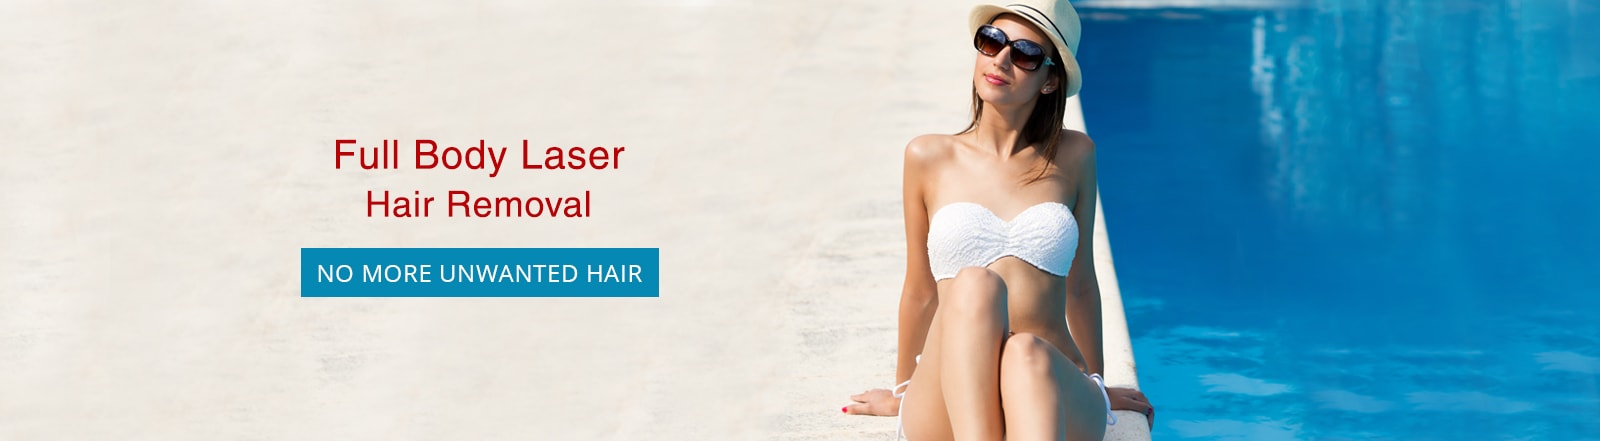 full body laser hair removal in south delhi